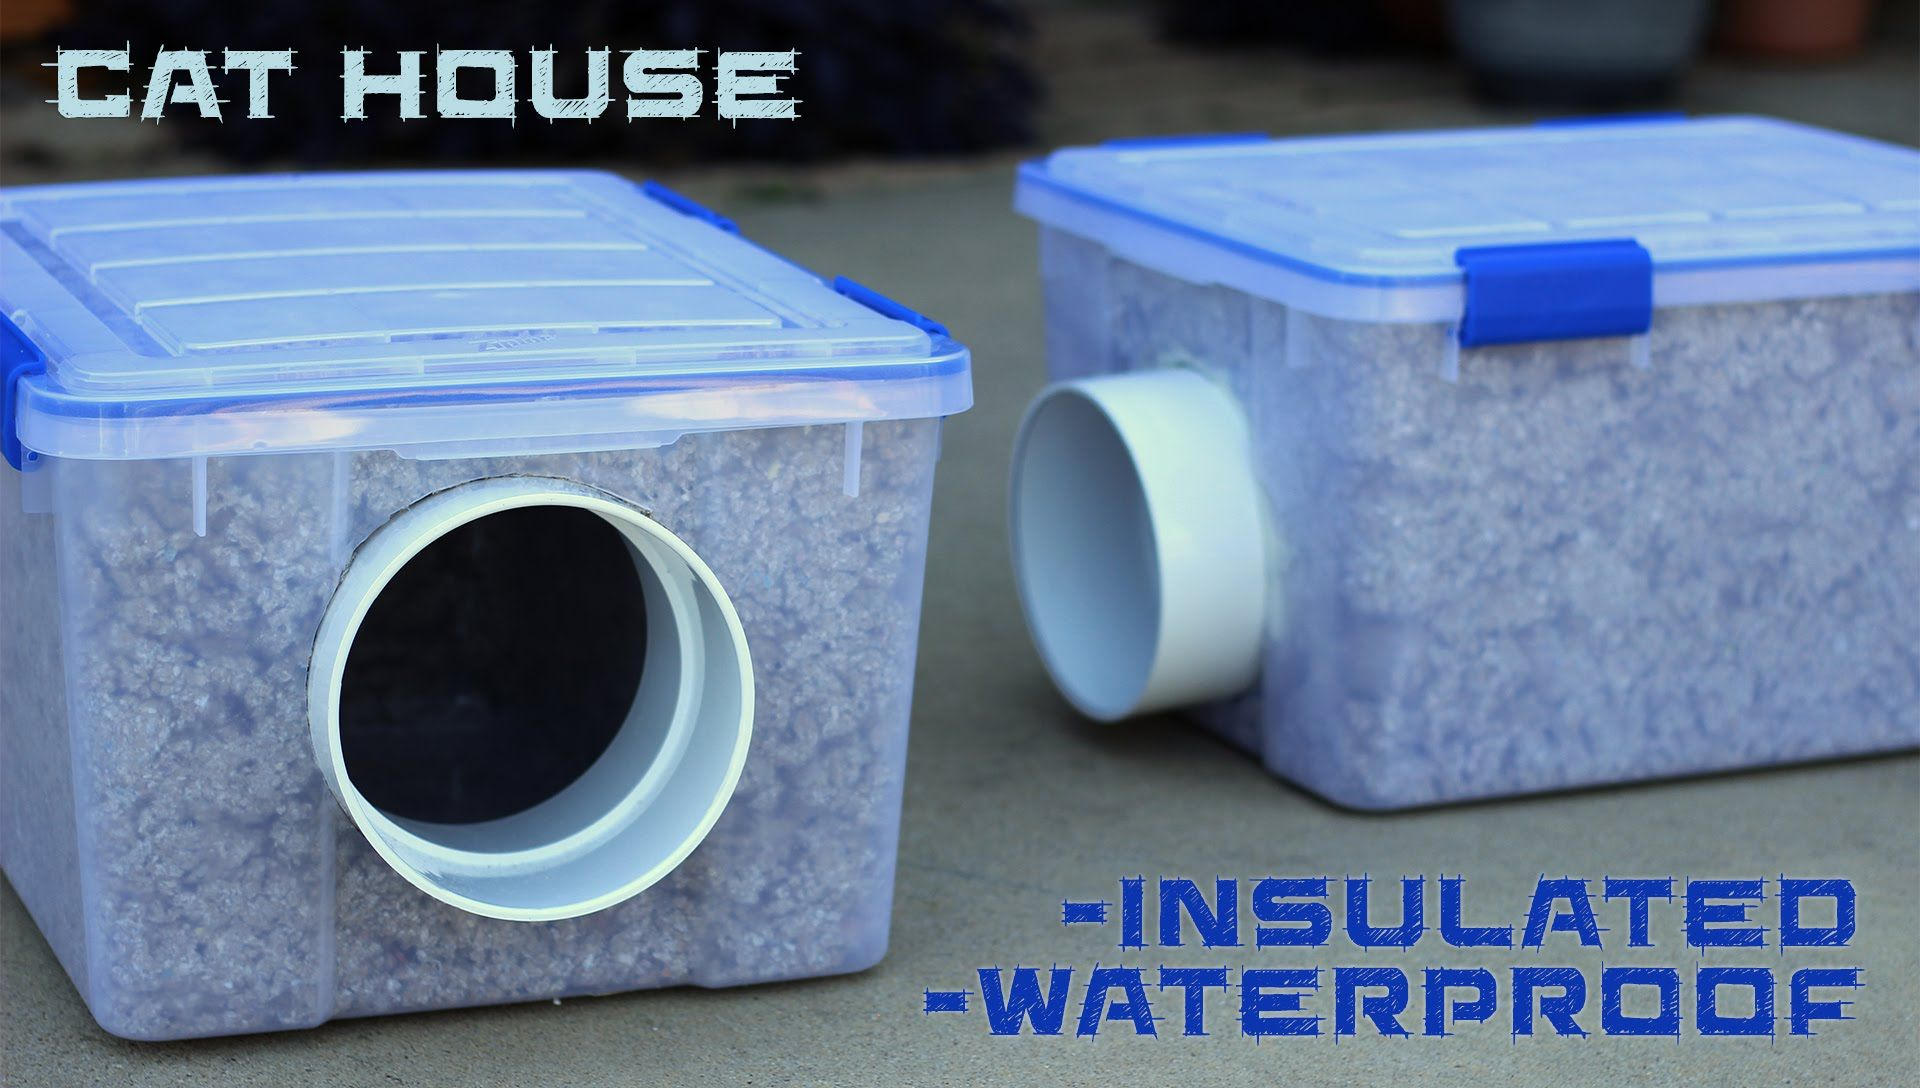 Instructions on how to build an insulated and waterproof